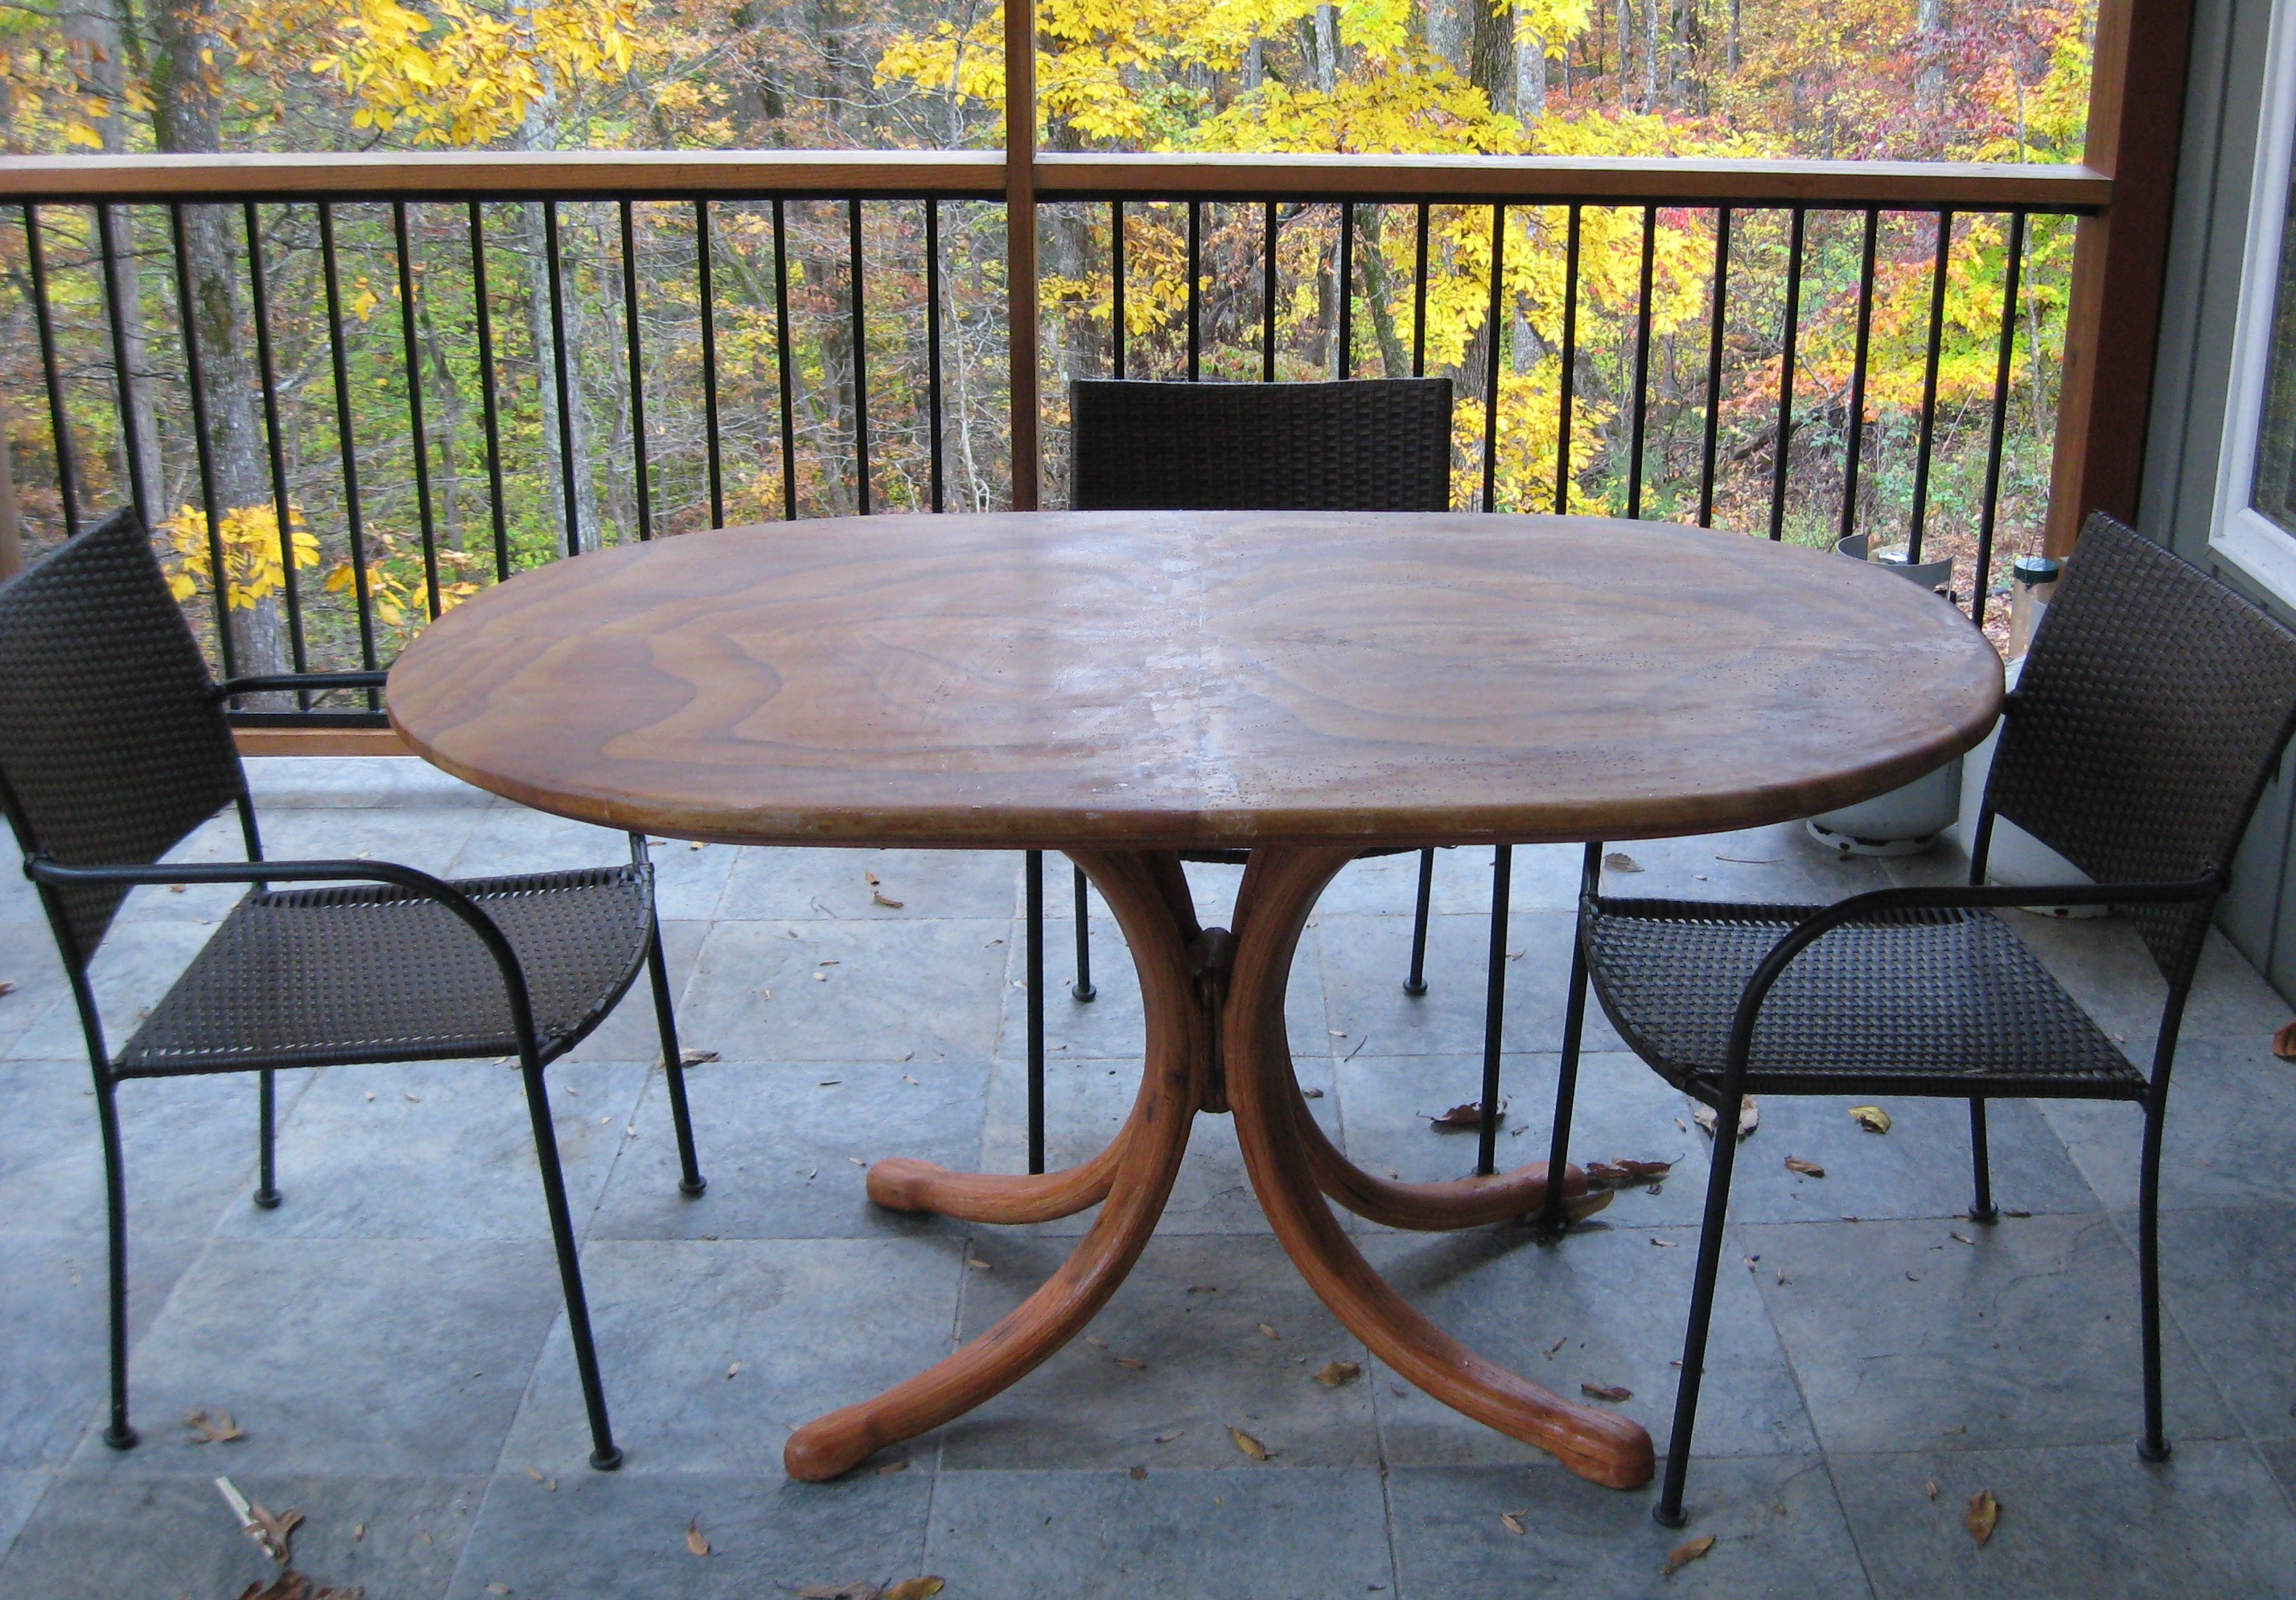 Patio table with sandstone top features accommodations for six around 5 feet x 3 feet elliptical top four rainbow sandstone landscape flagstone 30 x 18